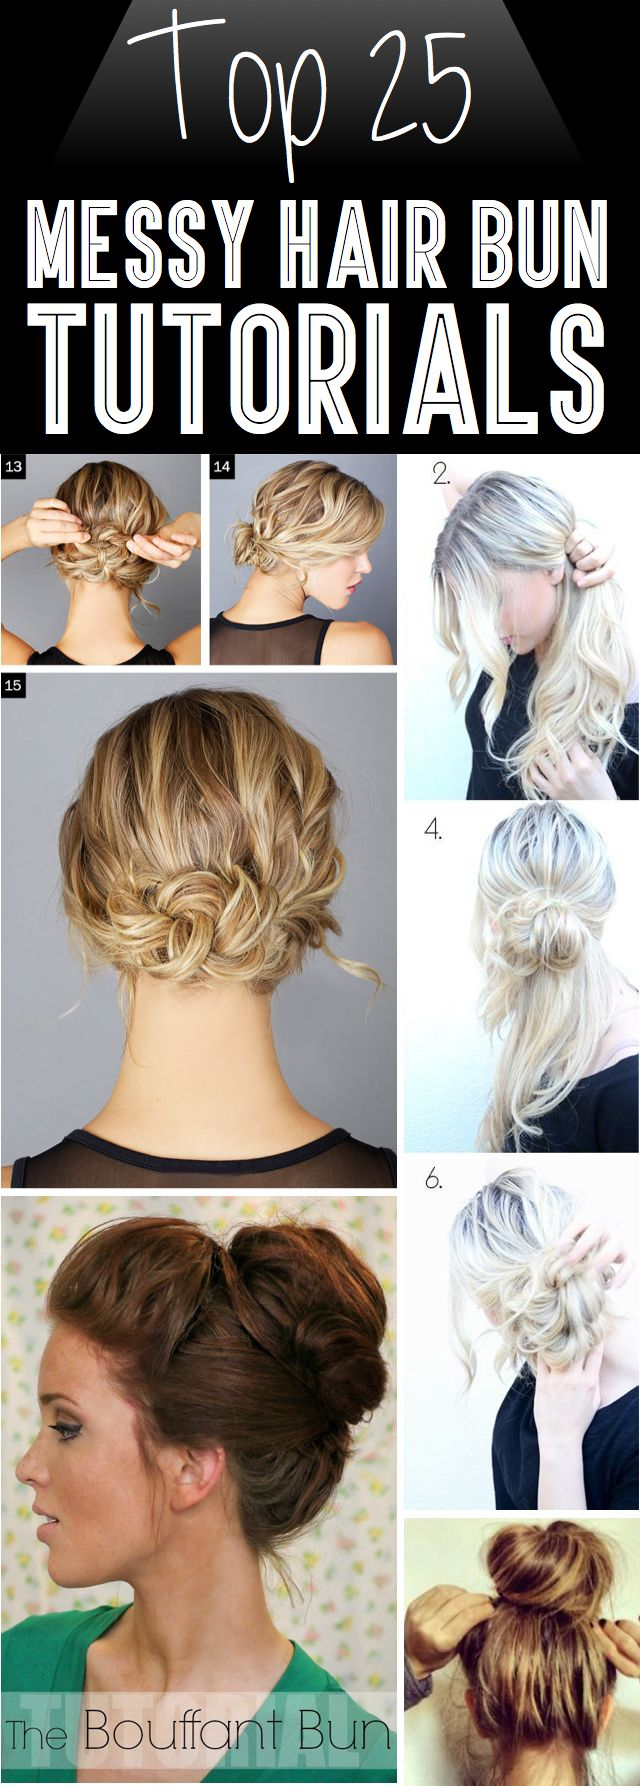 Top 25 Messy Hair Bun Tutorials Perfect For Those Lazy Mornings!